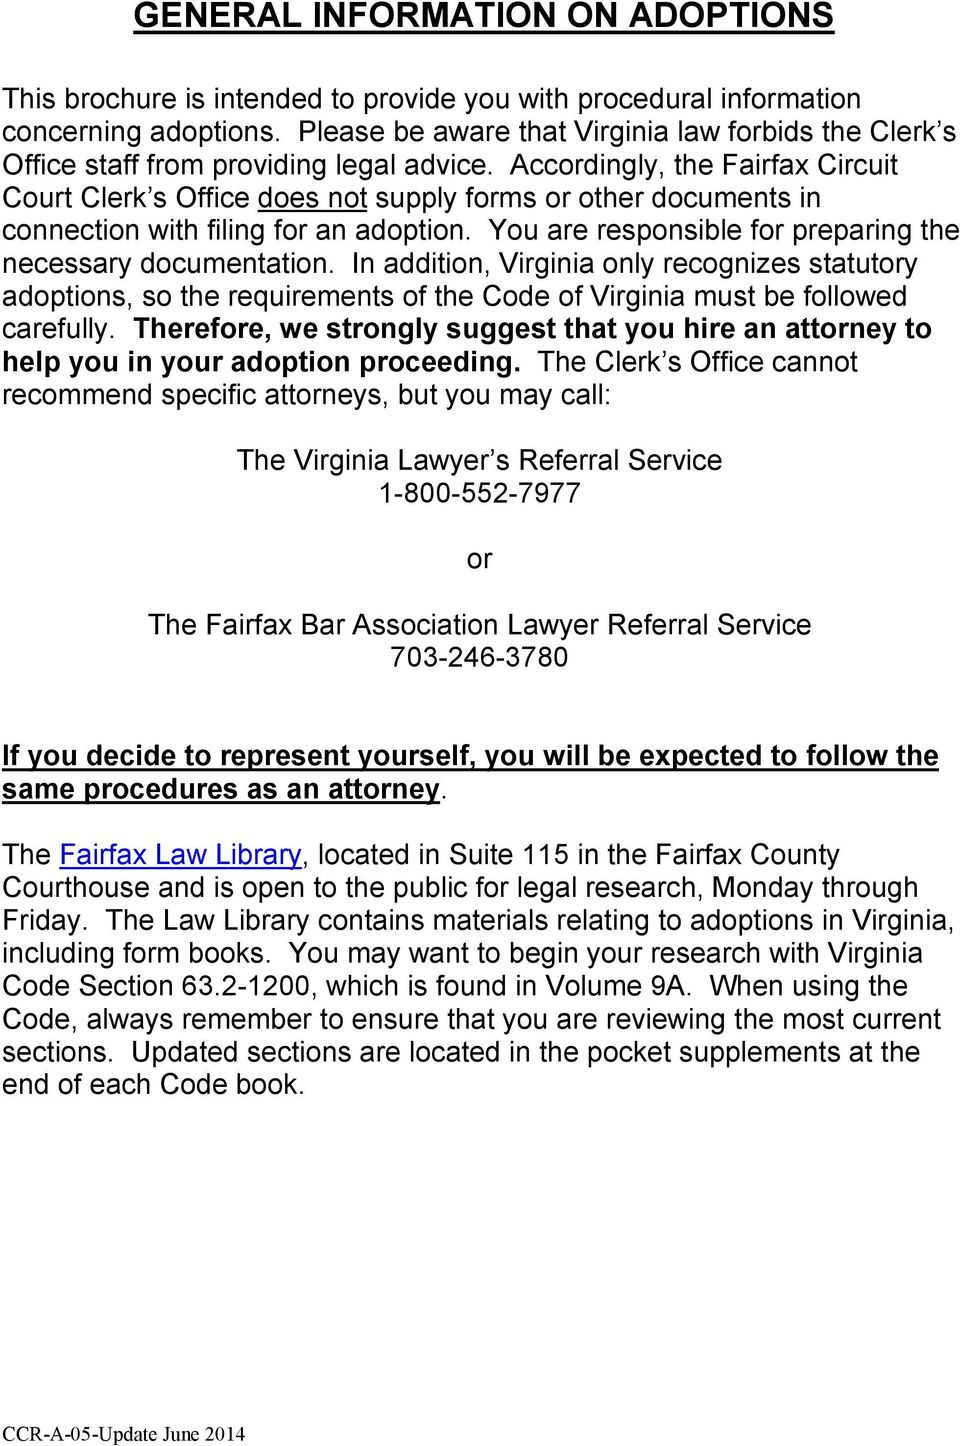 Accordingly, the Fairfax Circuit Court Clerk s Office does not supply forms or other documents in connection with filing for an adoption. You are responsible for preparing the necessary documentation.